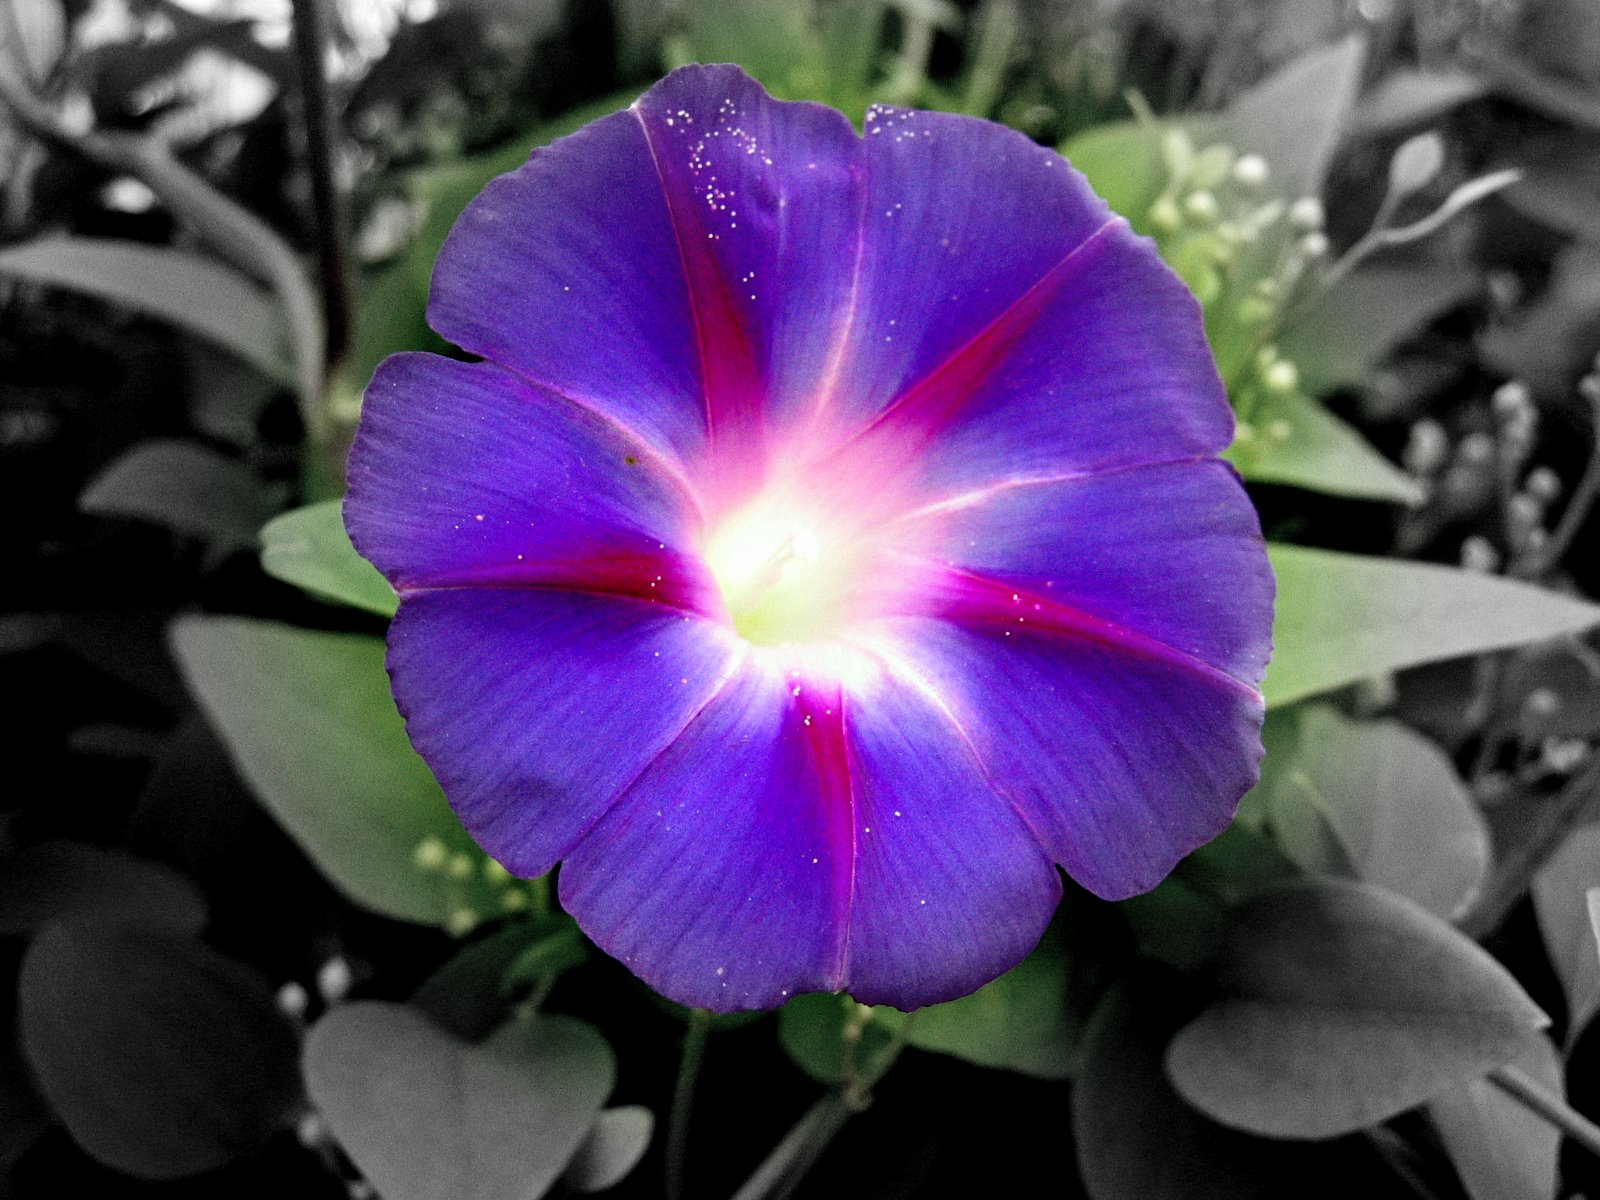 morning glory flower meaning  flower, Natural flower